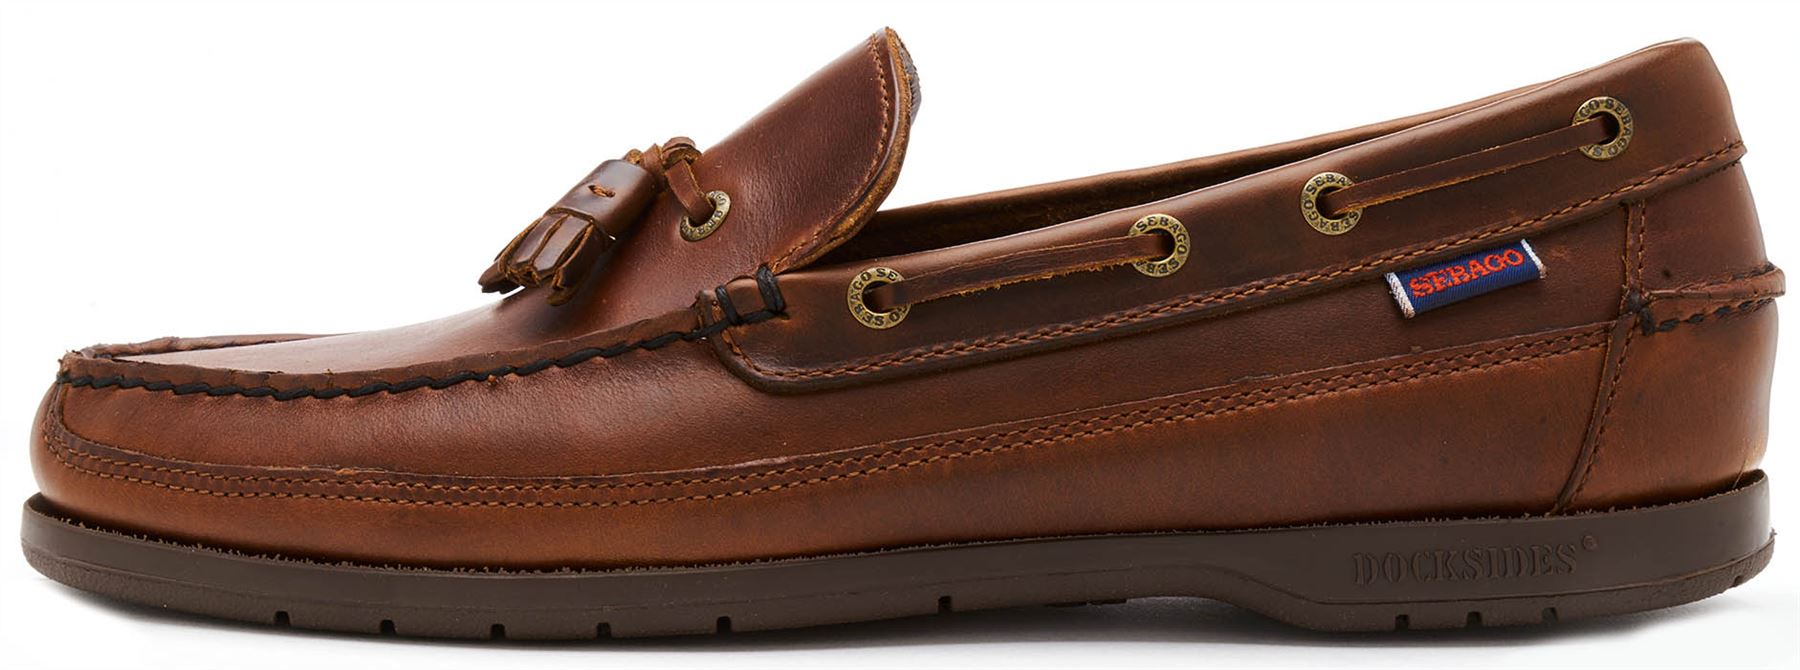 a6a6685ab0708 Details about Sebago Ketch FGL Oiled Waxy Leather Moccasin Regular & Wide  Width Shoes in Brown